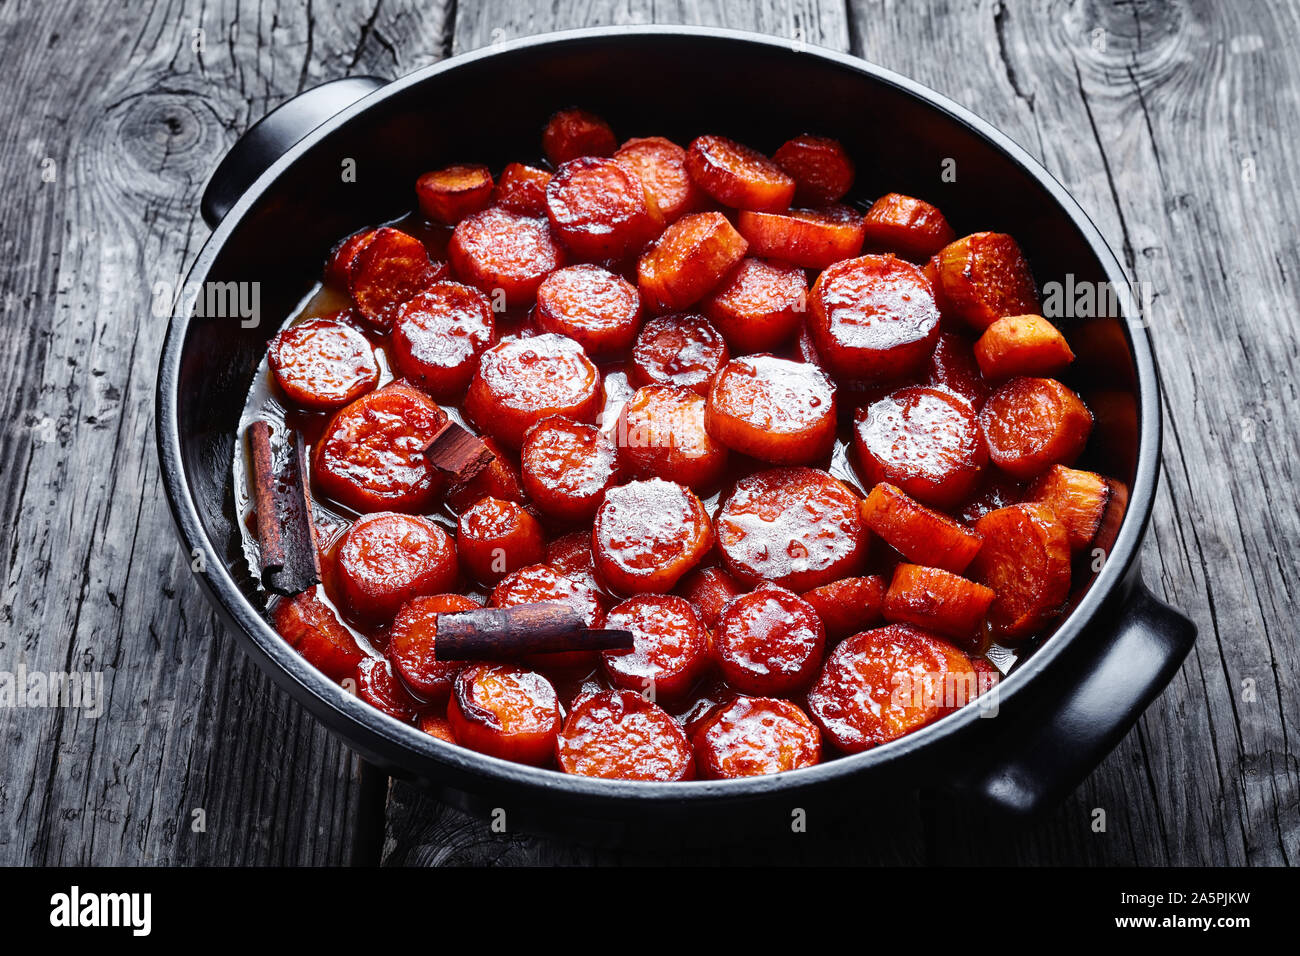 candied yams, thanksgiving sweet potatoes cooked with cinnamon, brown sugar and butter in a black ceramic dish, horizontal view from above Stock Photo